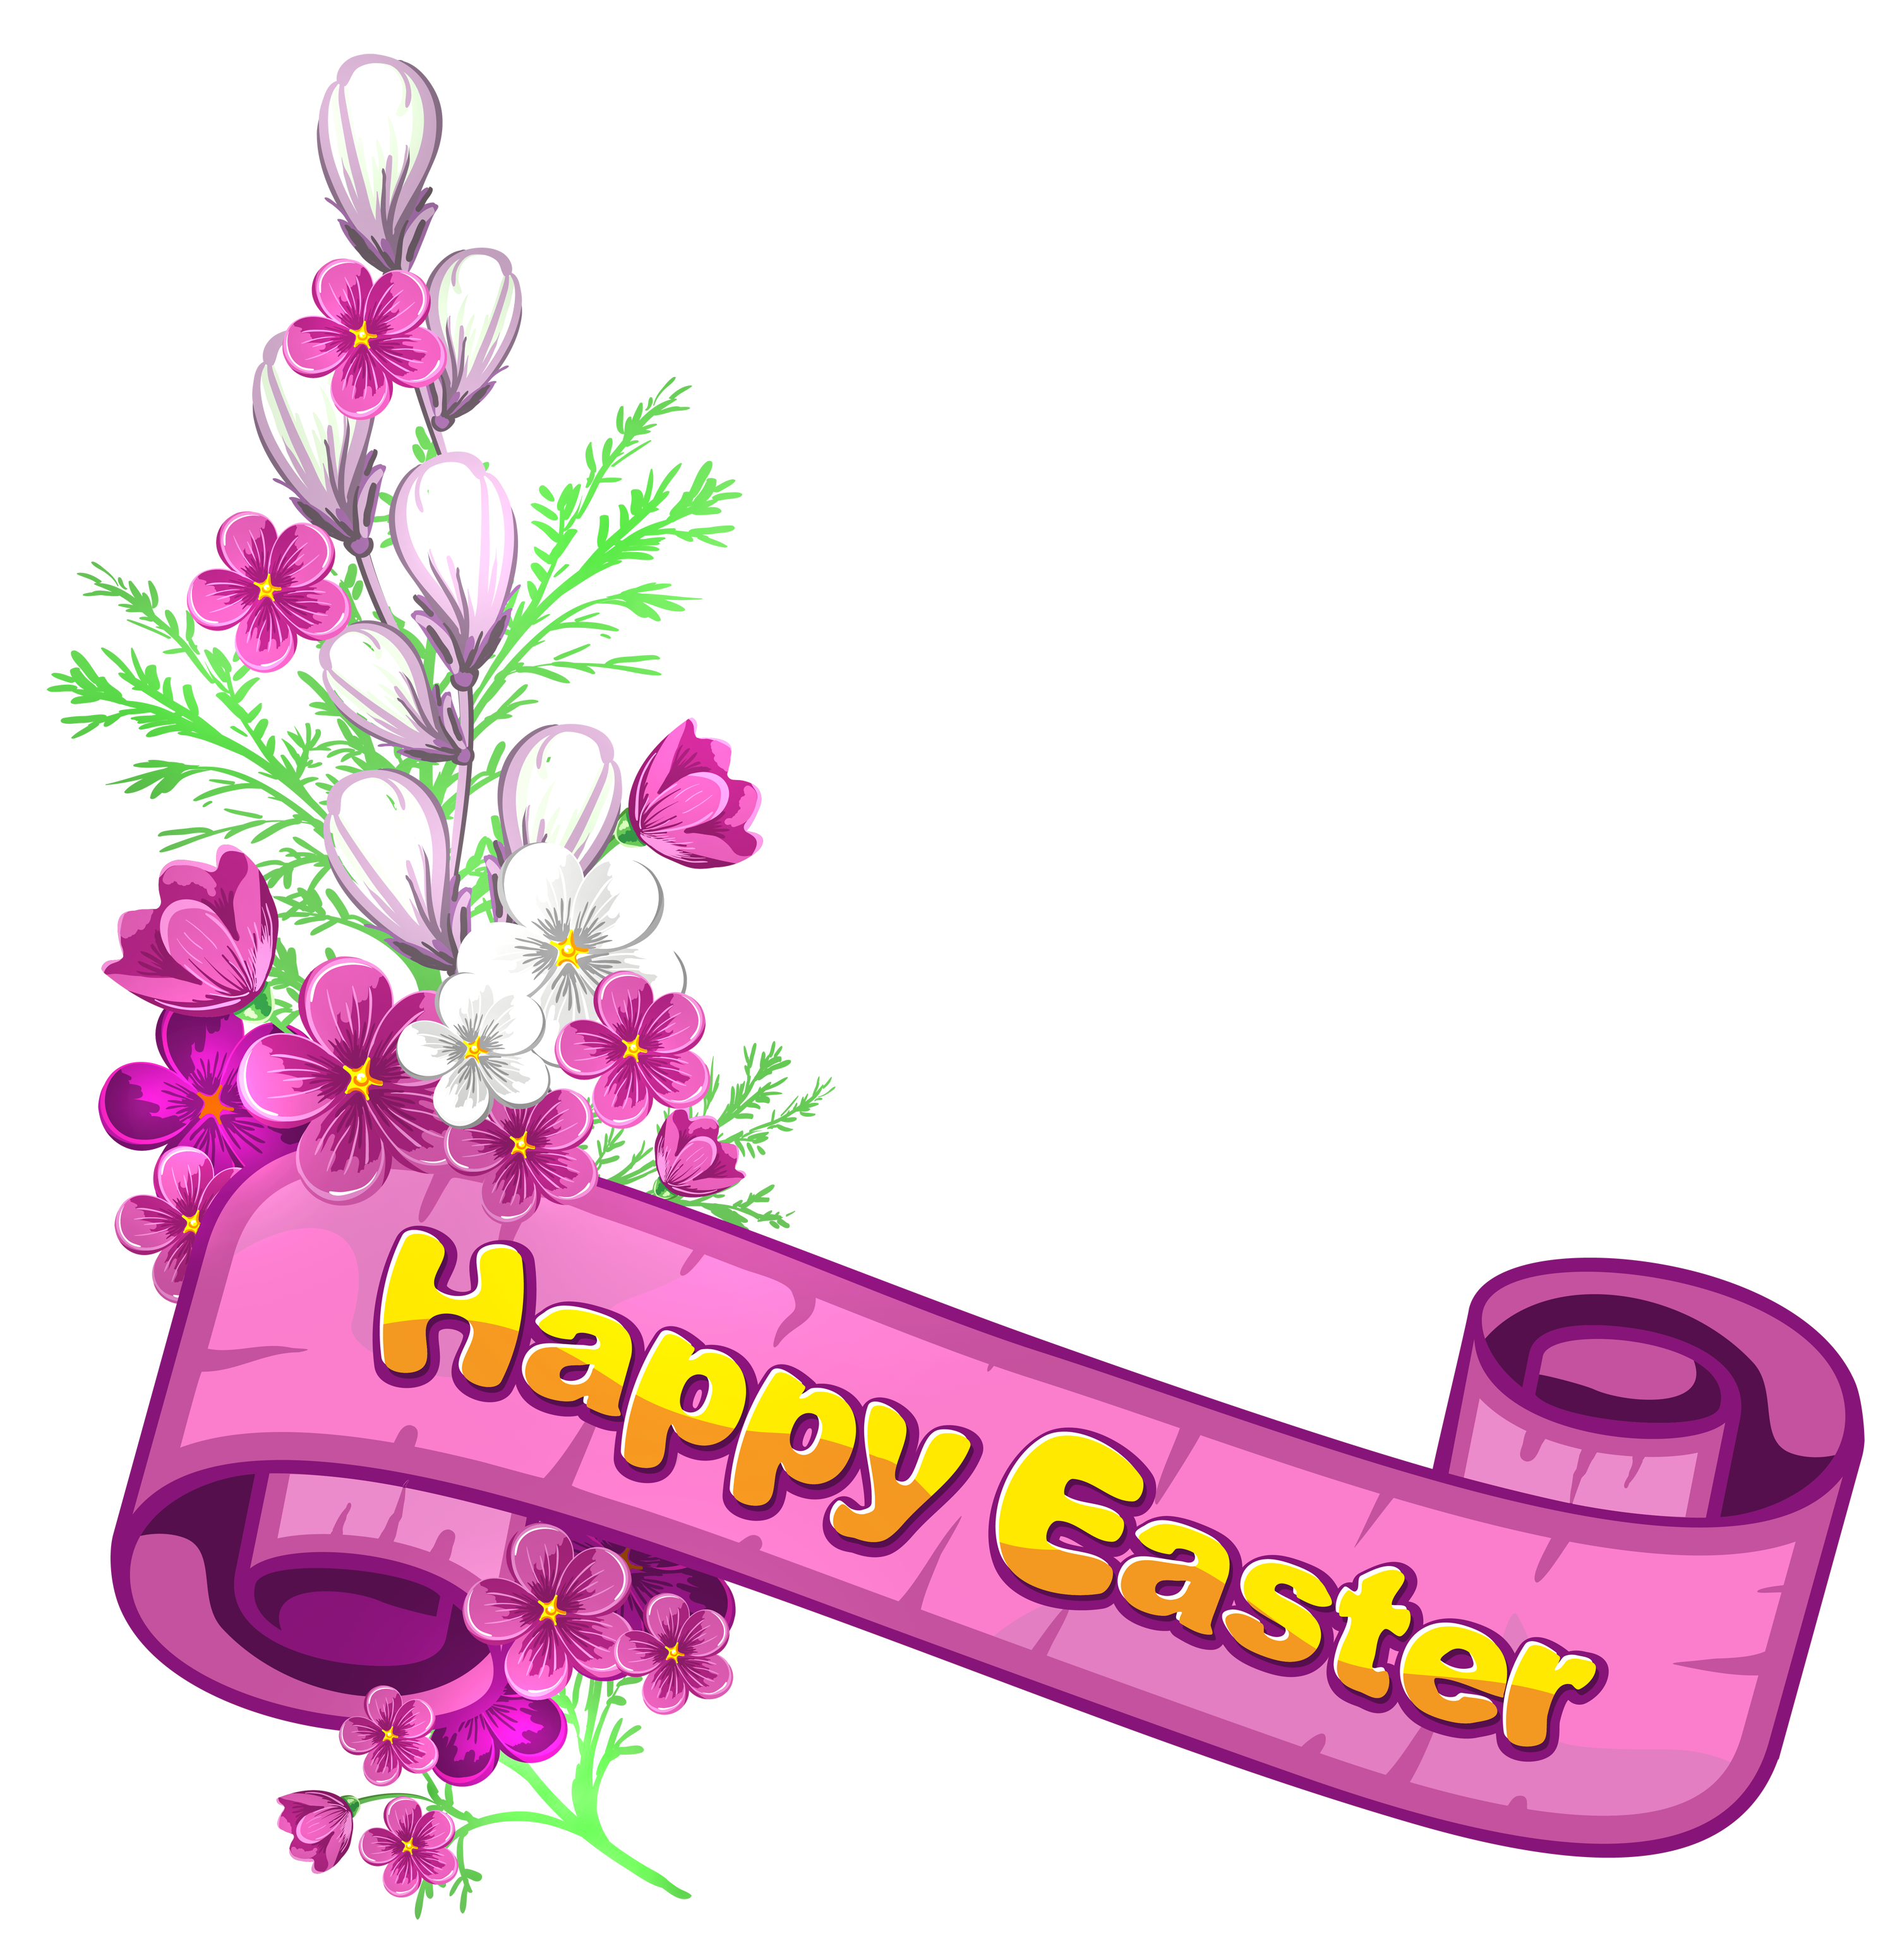 Happy easter clipart border. Pink banner and flowers